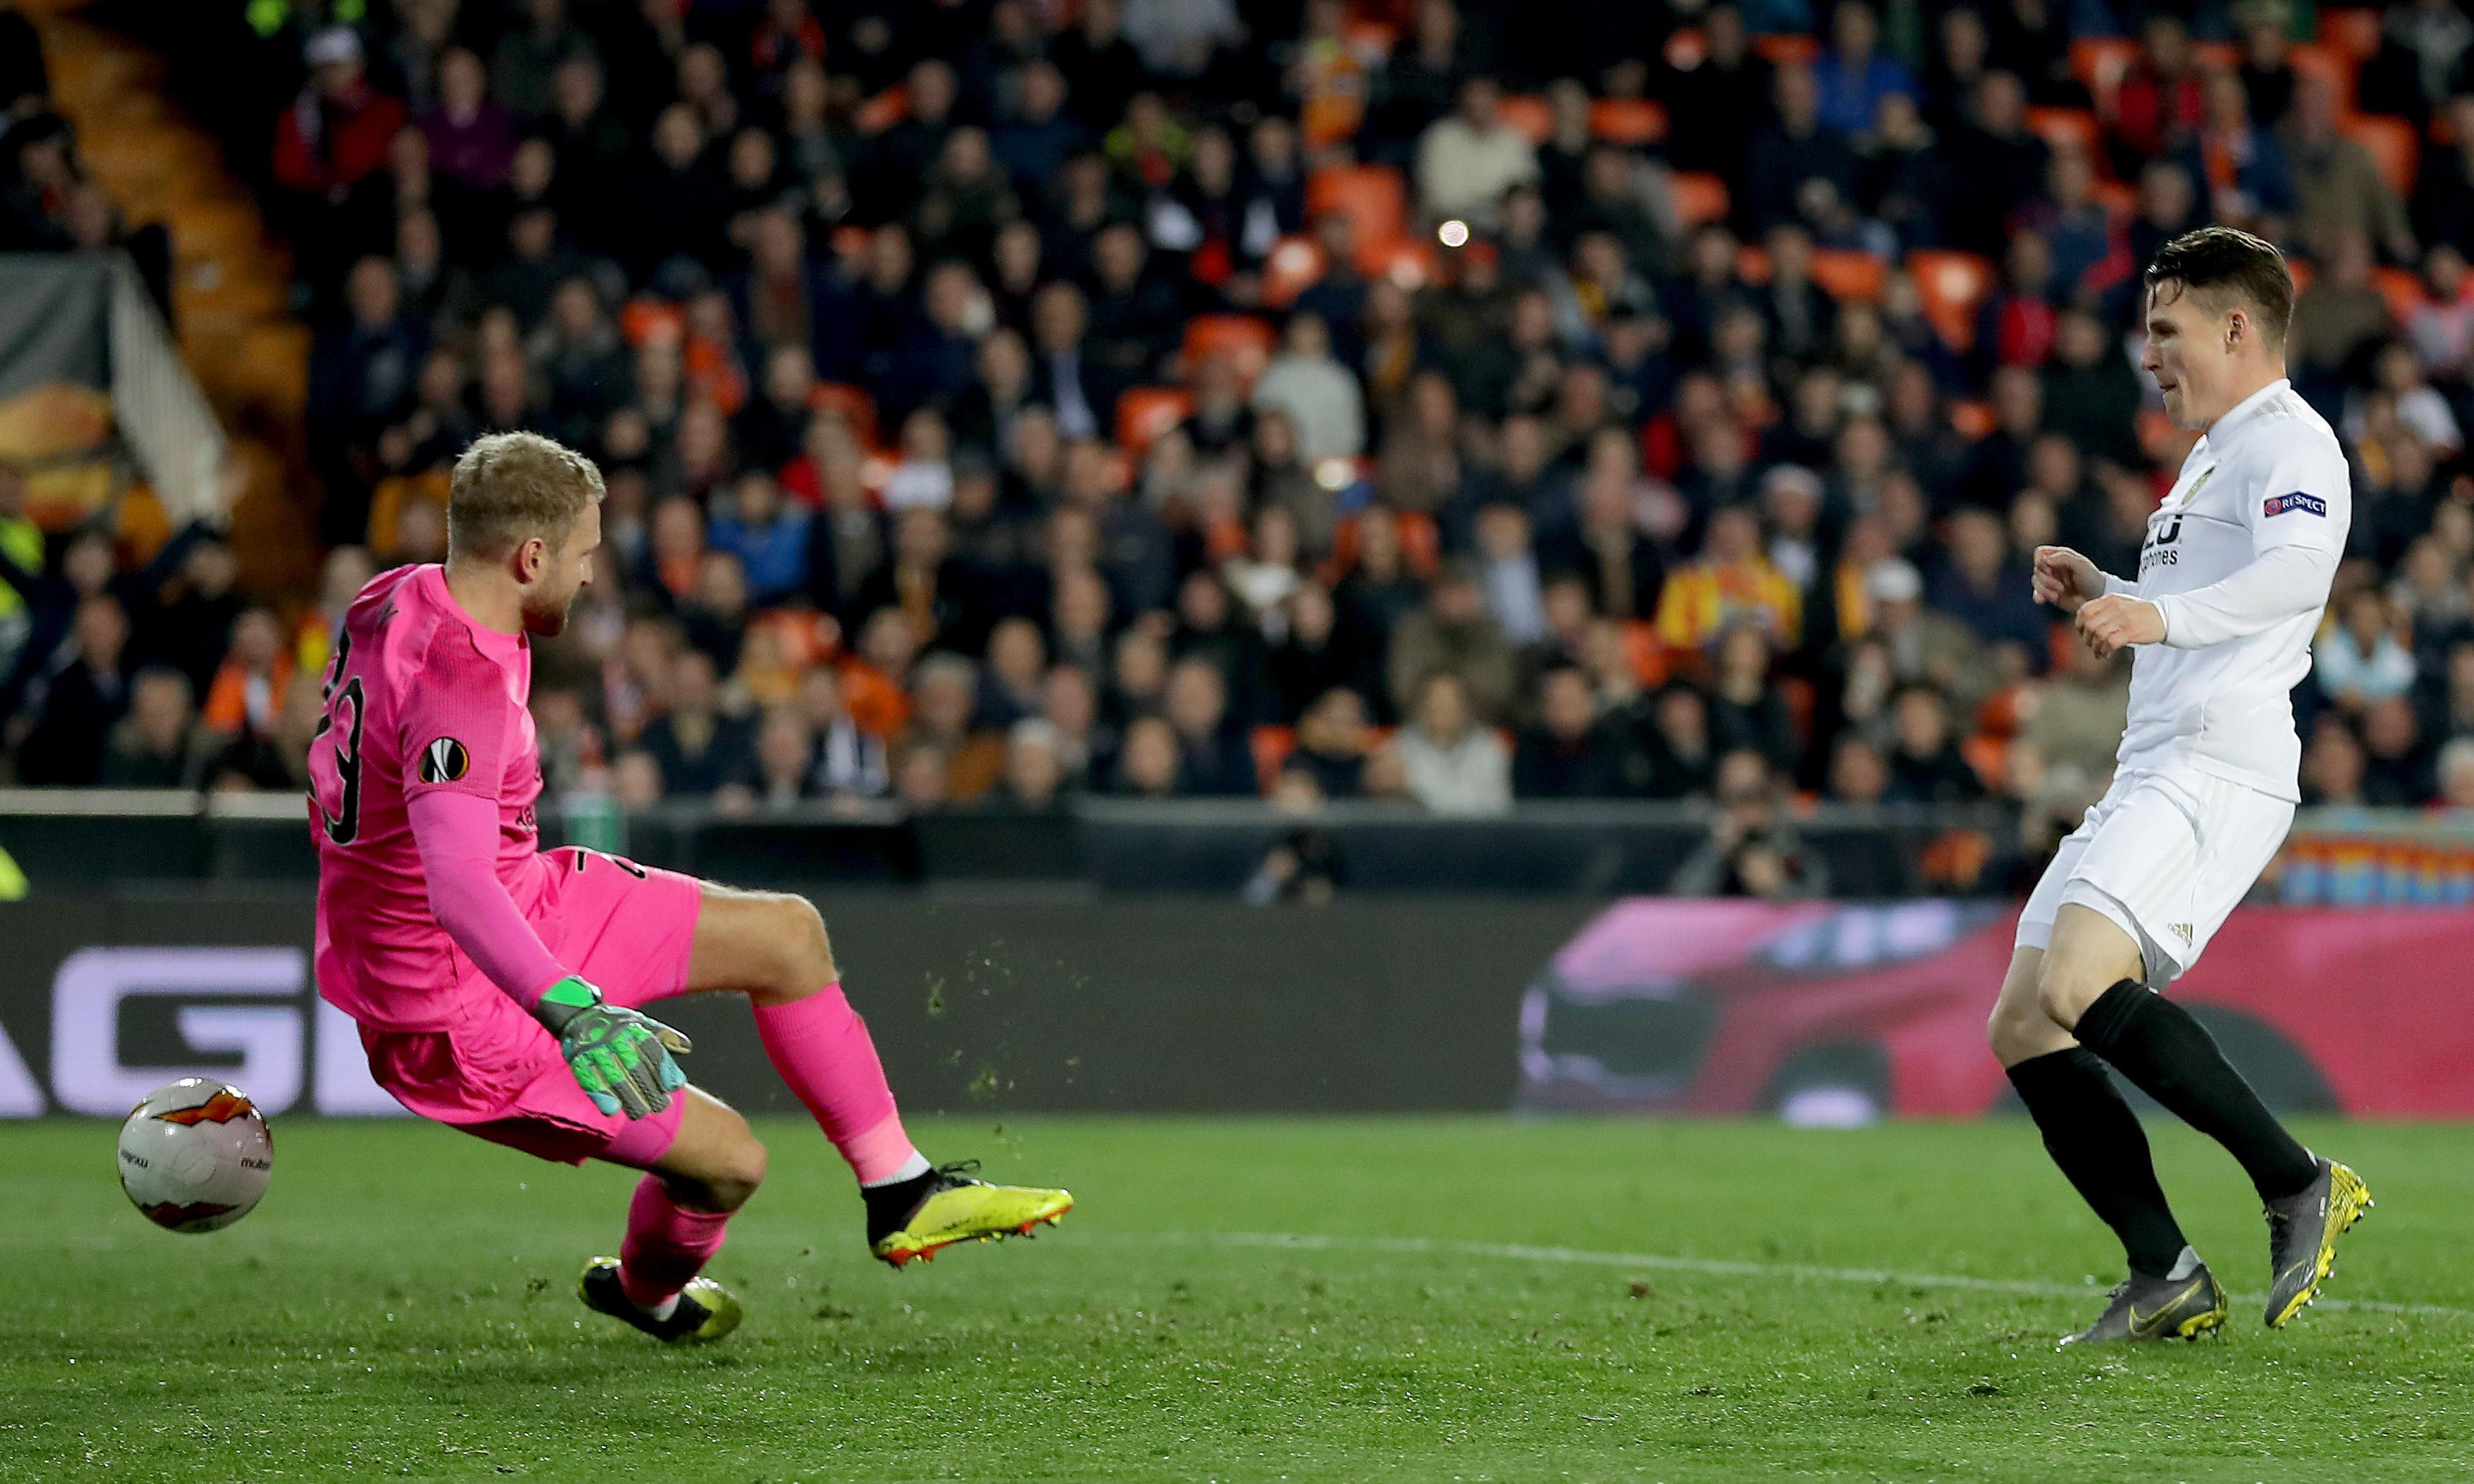 Celtic out of Europe after Toljan red card gives Valencia upper hand and victory